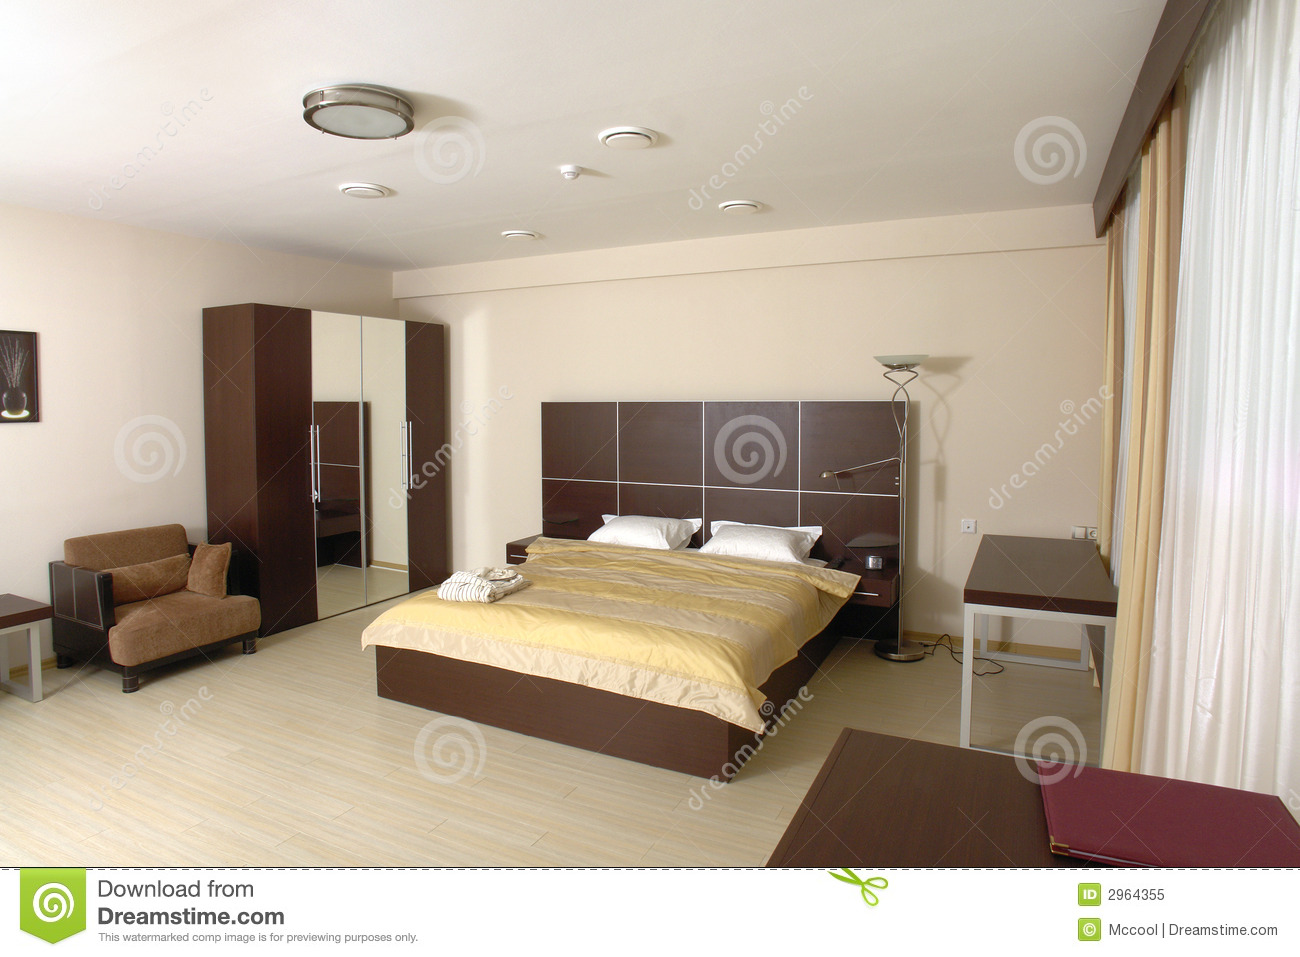 Chambre coucher moderne photo libre de droits image 2964355 for Photo chambre a coucher